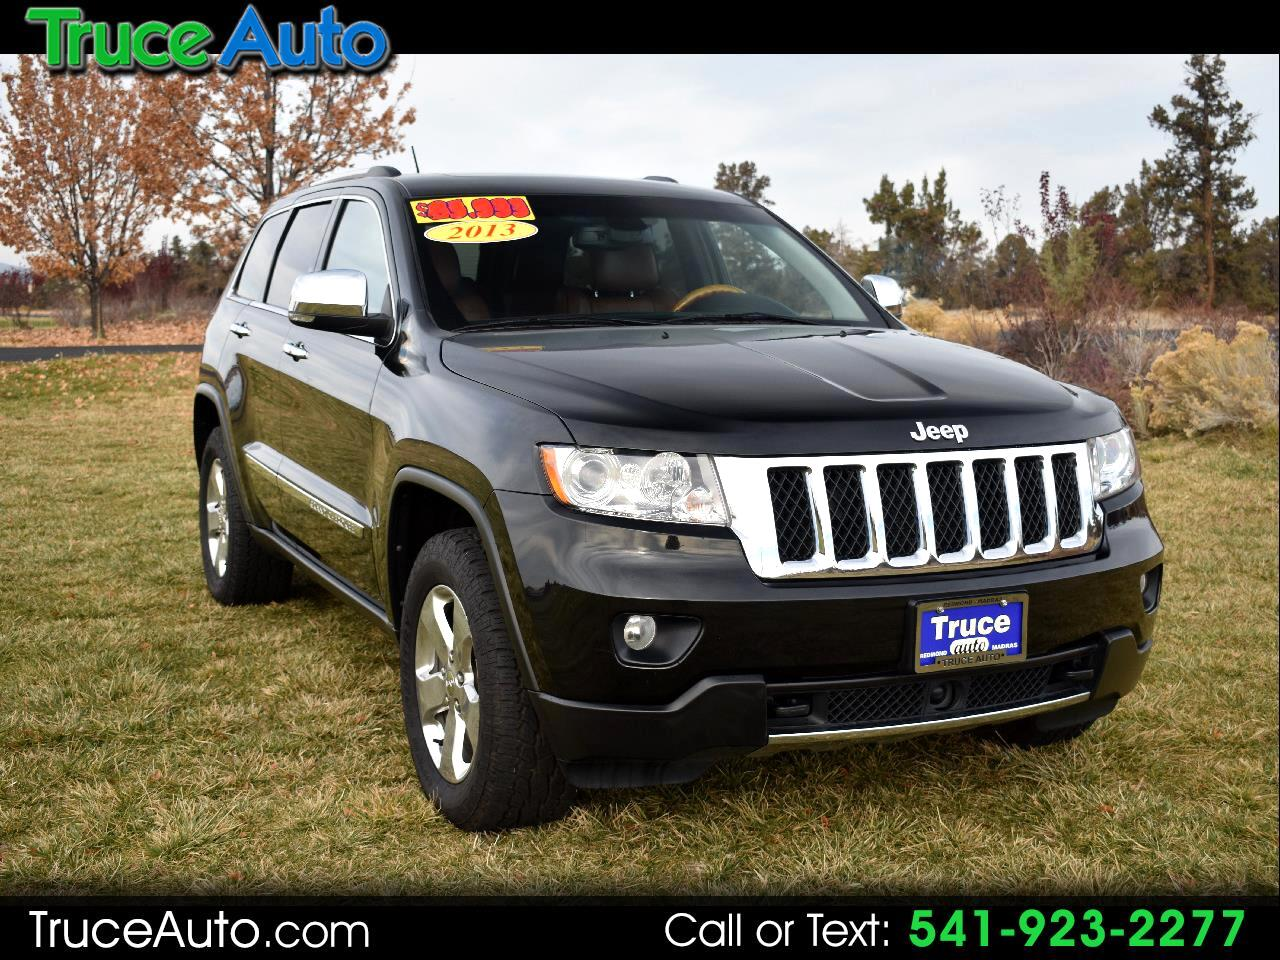 2013 Jeep Grand Cherokee Overland 4WD ***LOW MILE***